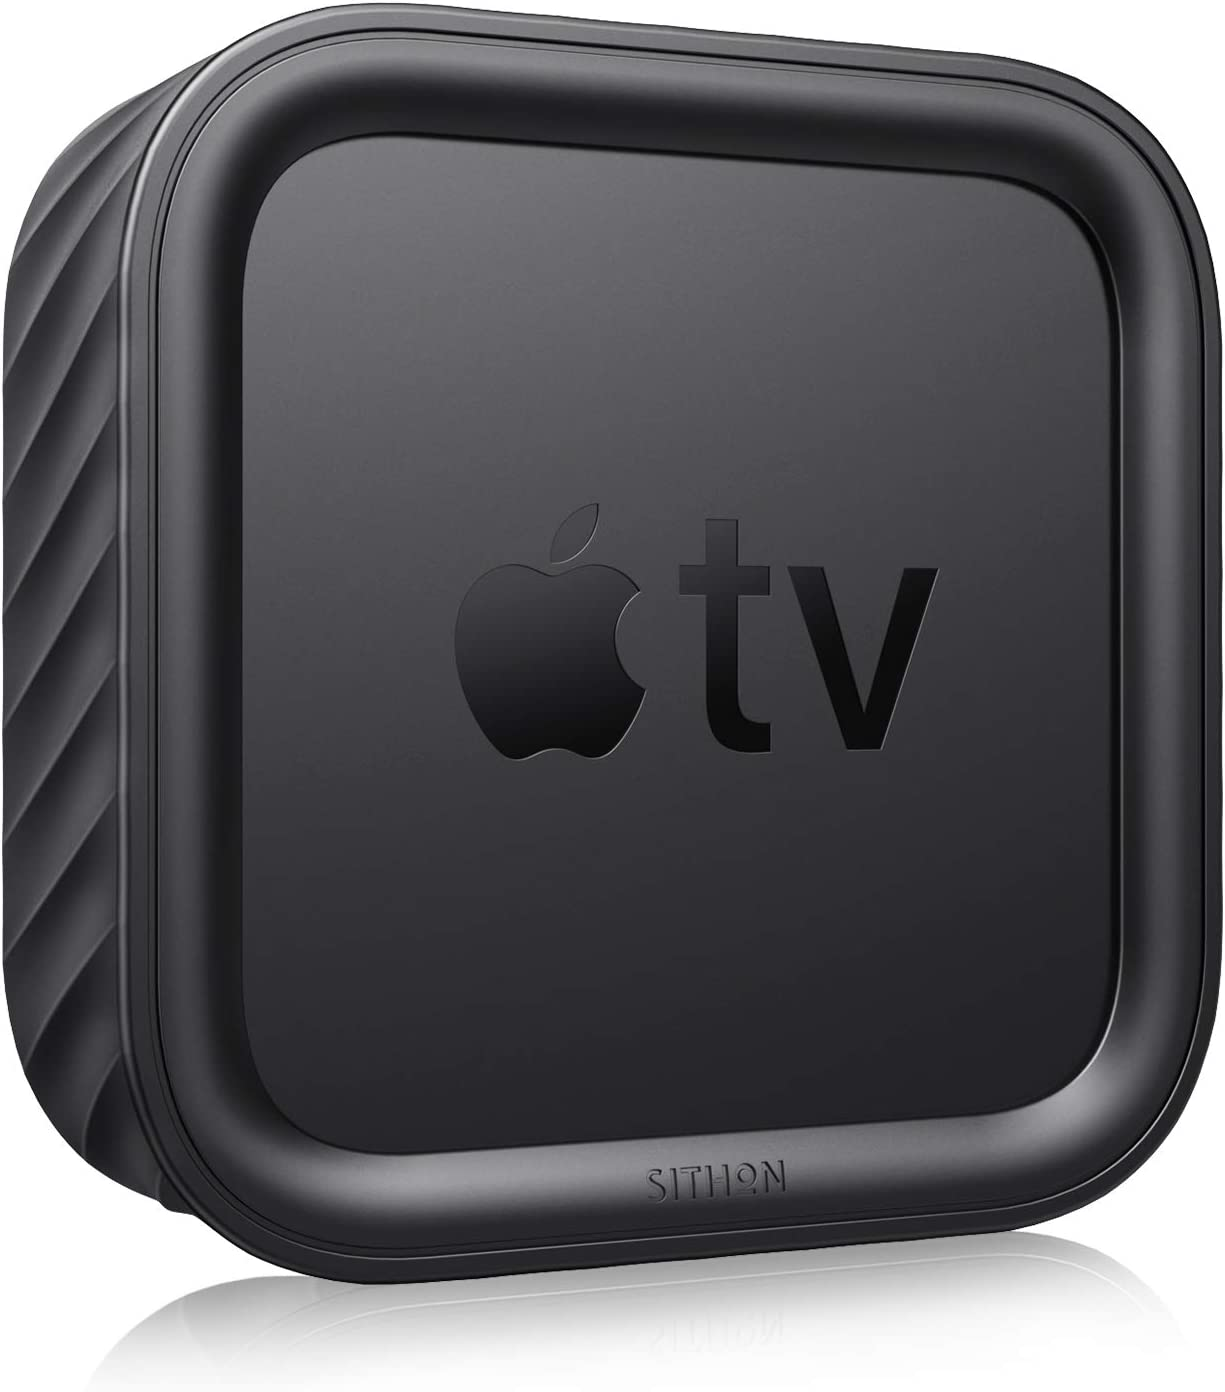 SITHON Silicone Case for Apple TV 4K (2nd & 1st Gen) / Apple TV HD, Lightweight Shockproof Anti Slip Protective Cover for Apple TV 4K 2021 / HD 4th Generation, Black